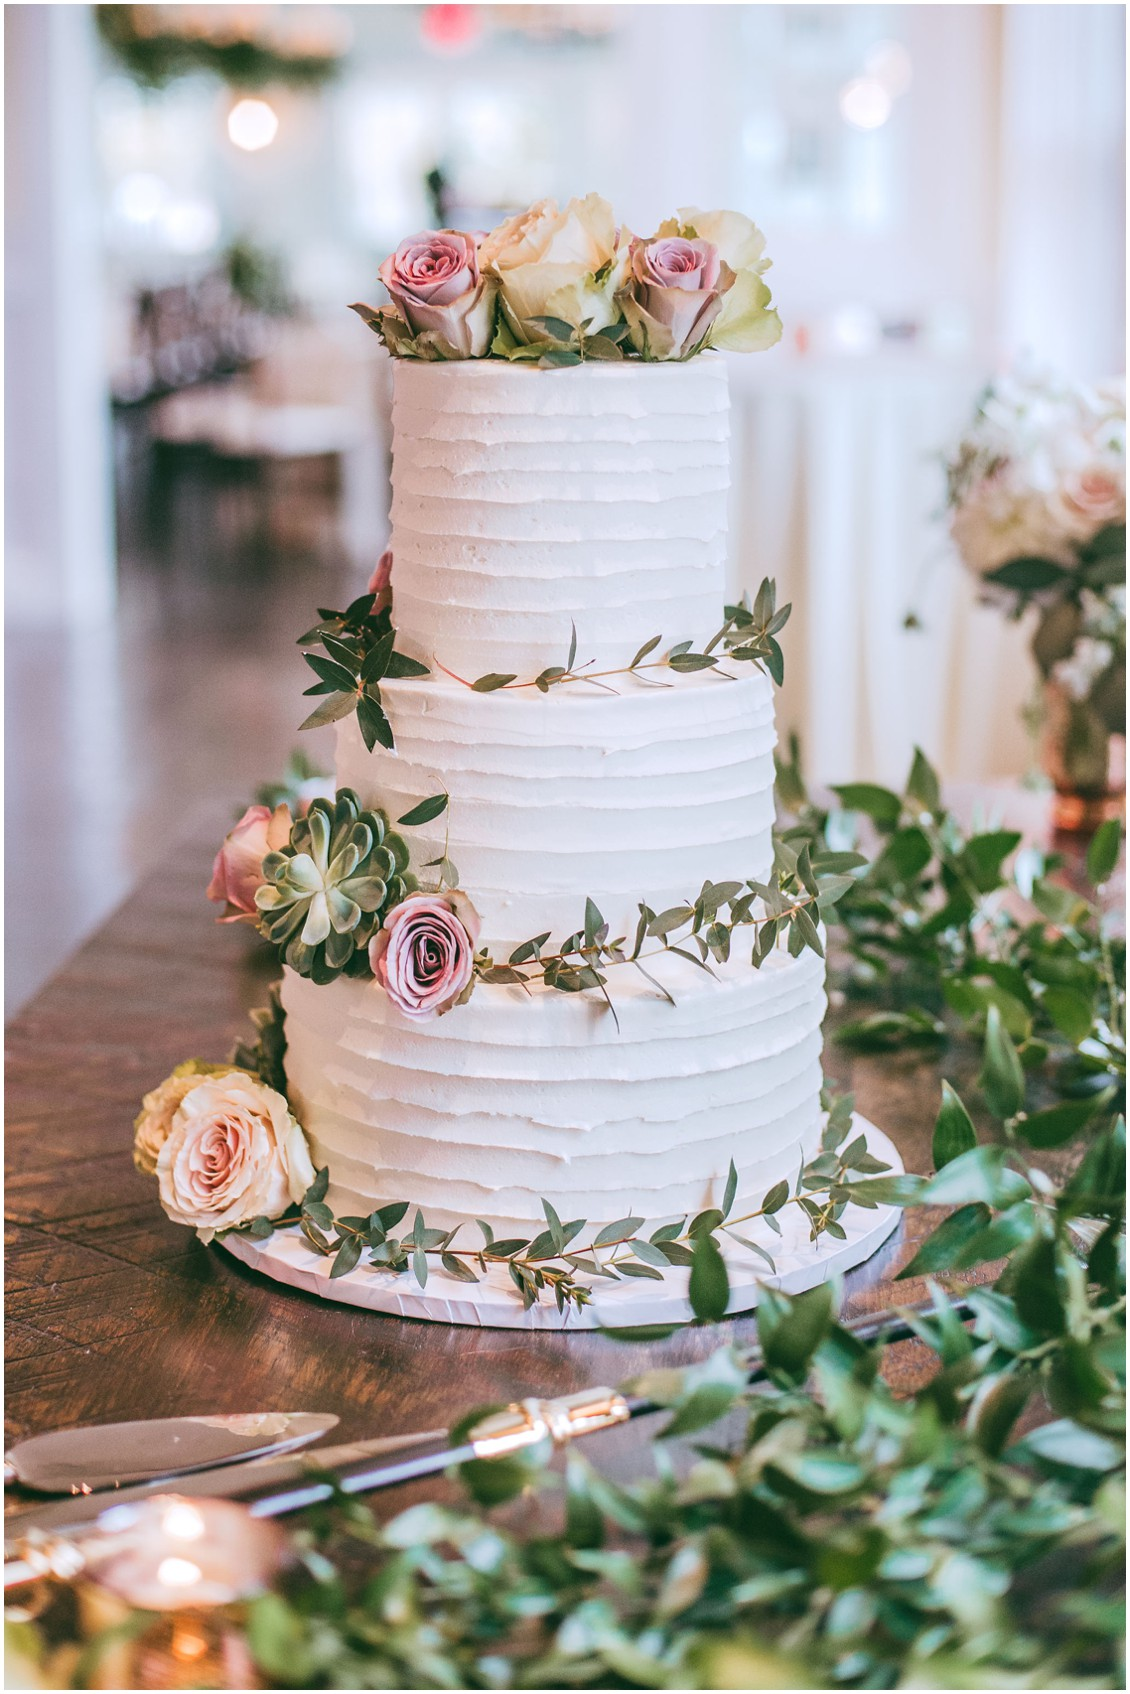 Cake with dusty pink and white roses and greenery | My Eastern Shore Wedding | Chesapeake Bay Beach Club